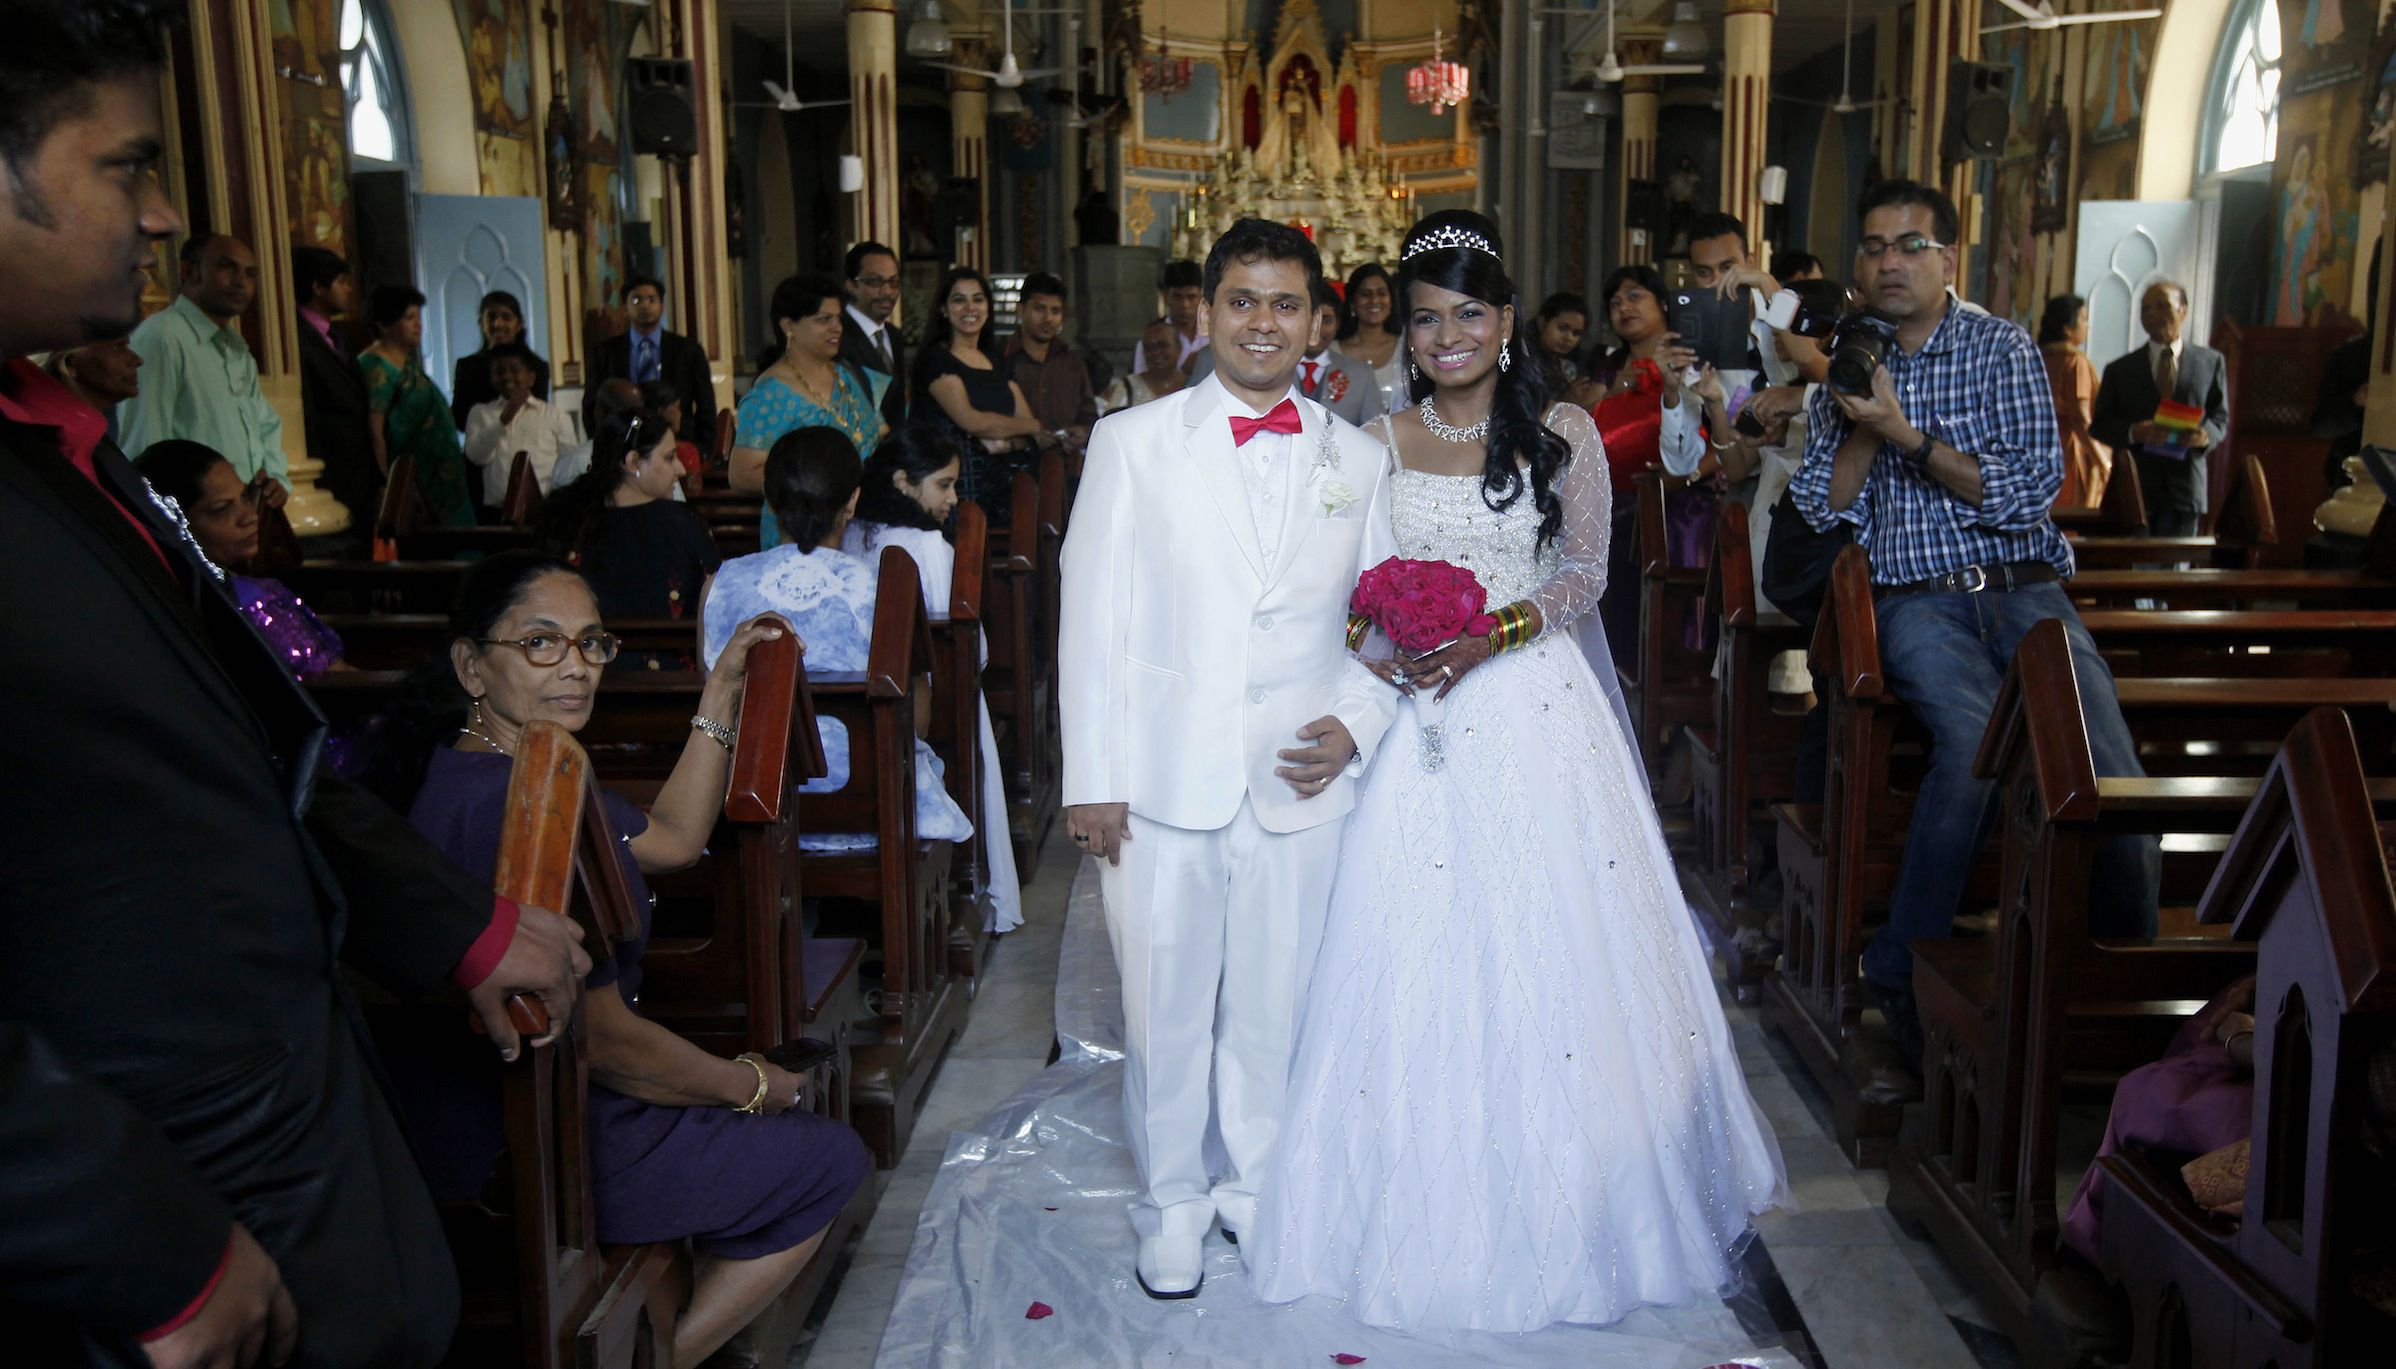 Newlywed Indian couple Brandon Pereira and Emilia D'Silva, right, pose after being married at a church in Mumbai, India, Wednesday, Dec. 12, 2012. The couple were engaged on 10/10/10, registered a legal marriage on 11/11/11 and had their official ceremony today on 12/12/12, a date seen as auspicious by many astrologers and that won't happen again for almost 100 years.  (AP Photo/Rajanish Kakade)